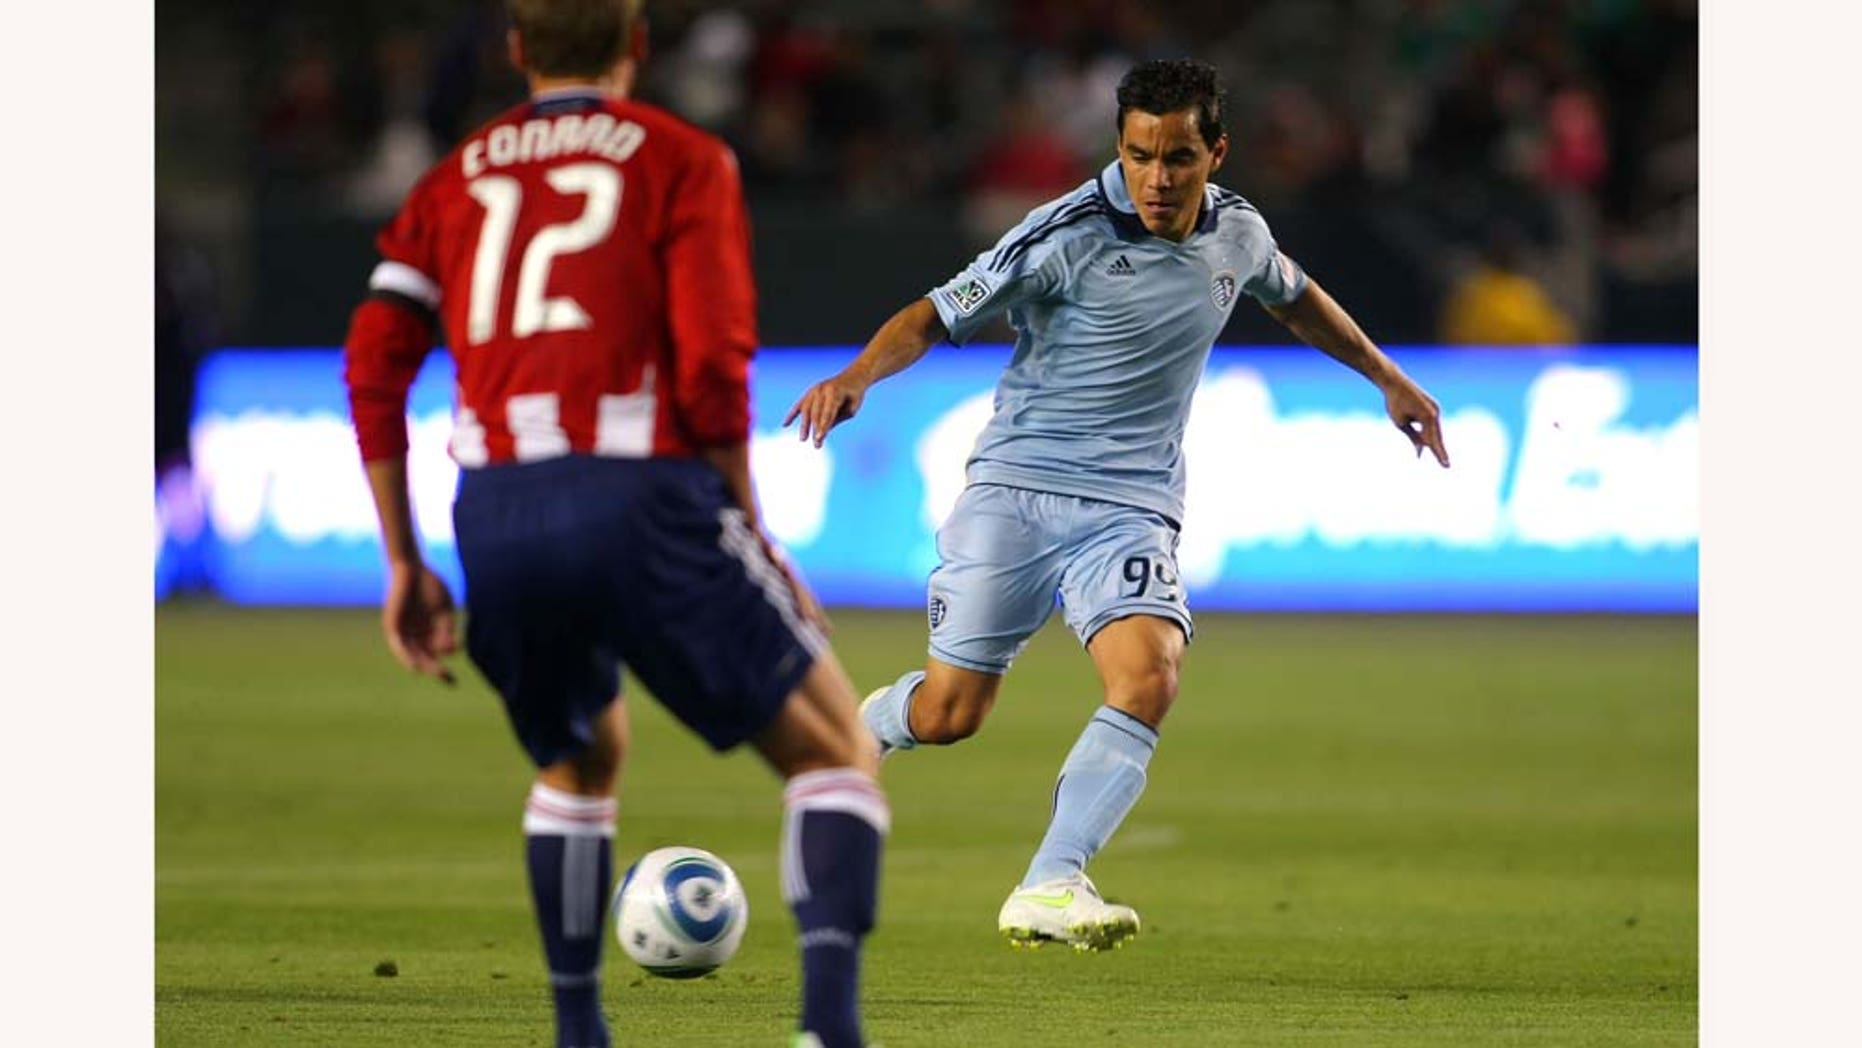 CARSON, CA - MARCH 19:  Omar Bravo #99 of Sporting Kansas City passes the ball in the first half during the MLS match against Chivas USA at The Home Depot Center on March 19, 2011 in Carson, California. SKC defeated Chivas USA 3-2. (Photo by Victor Decolongon/Getty Images)